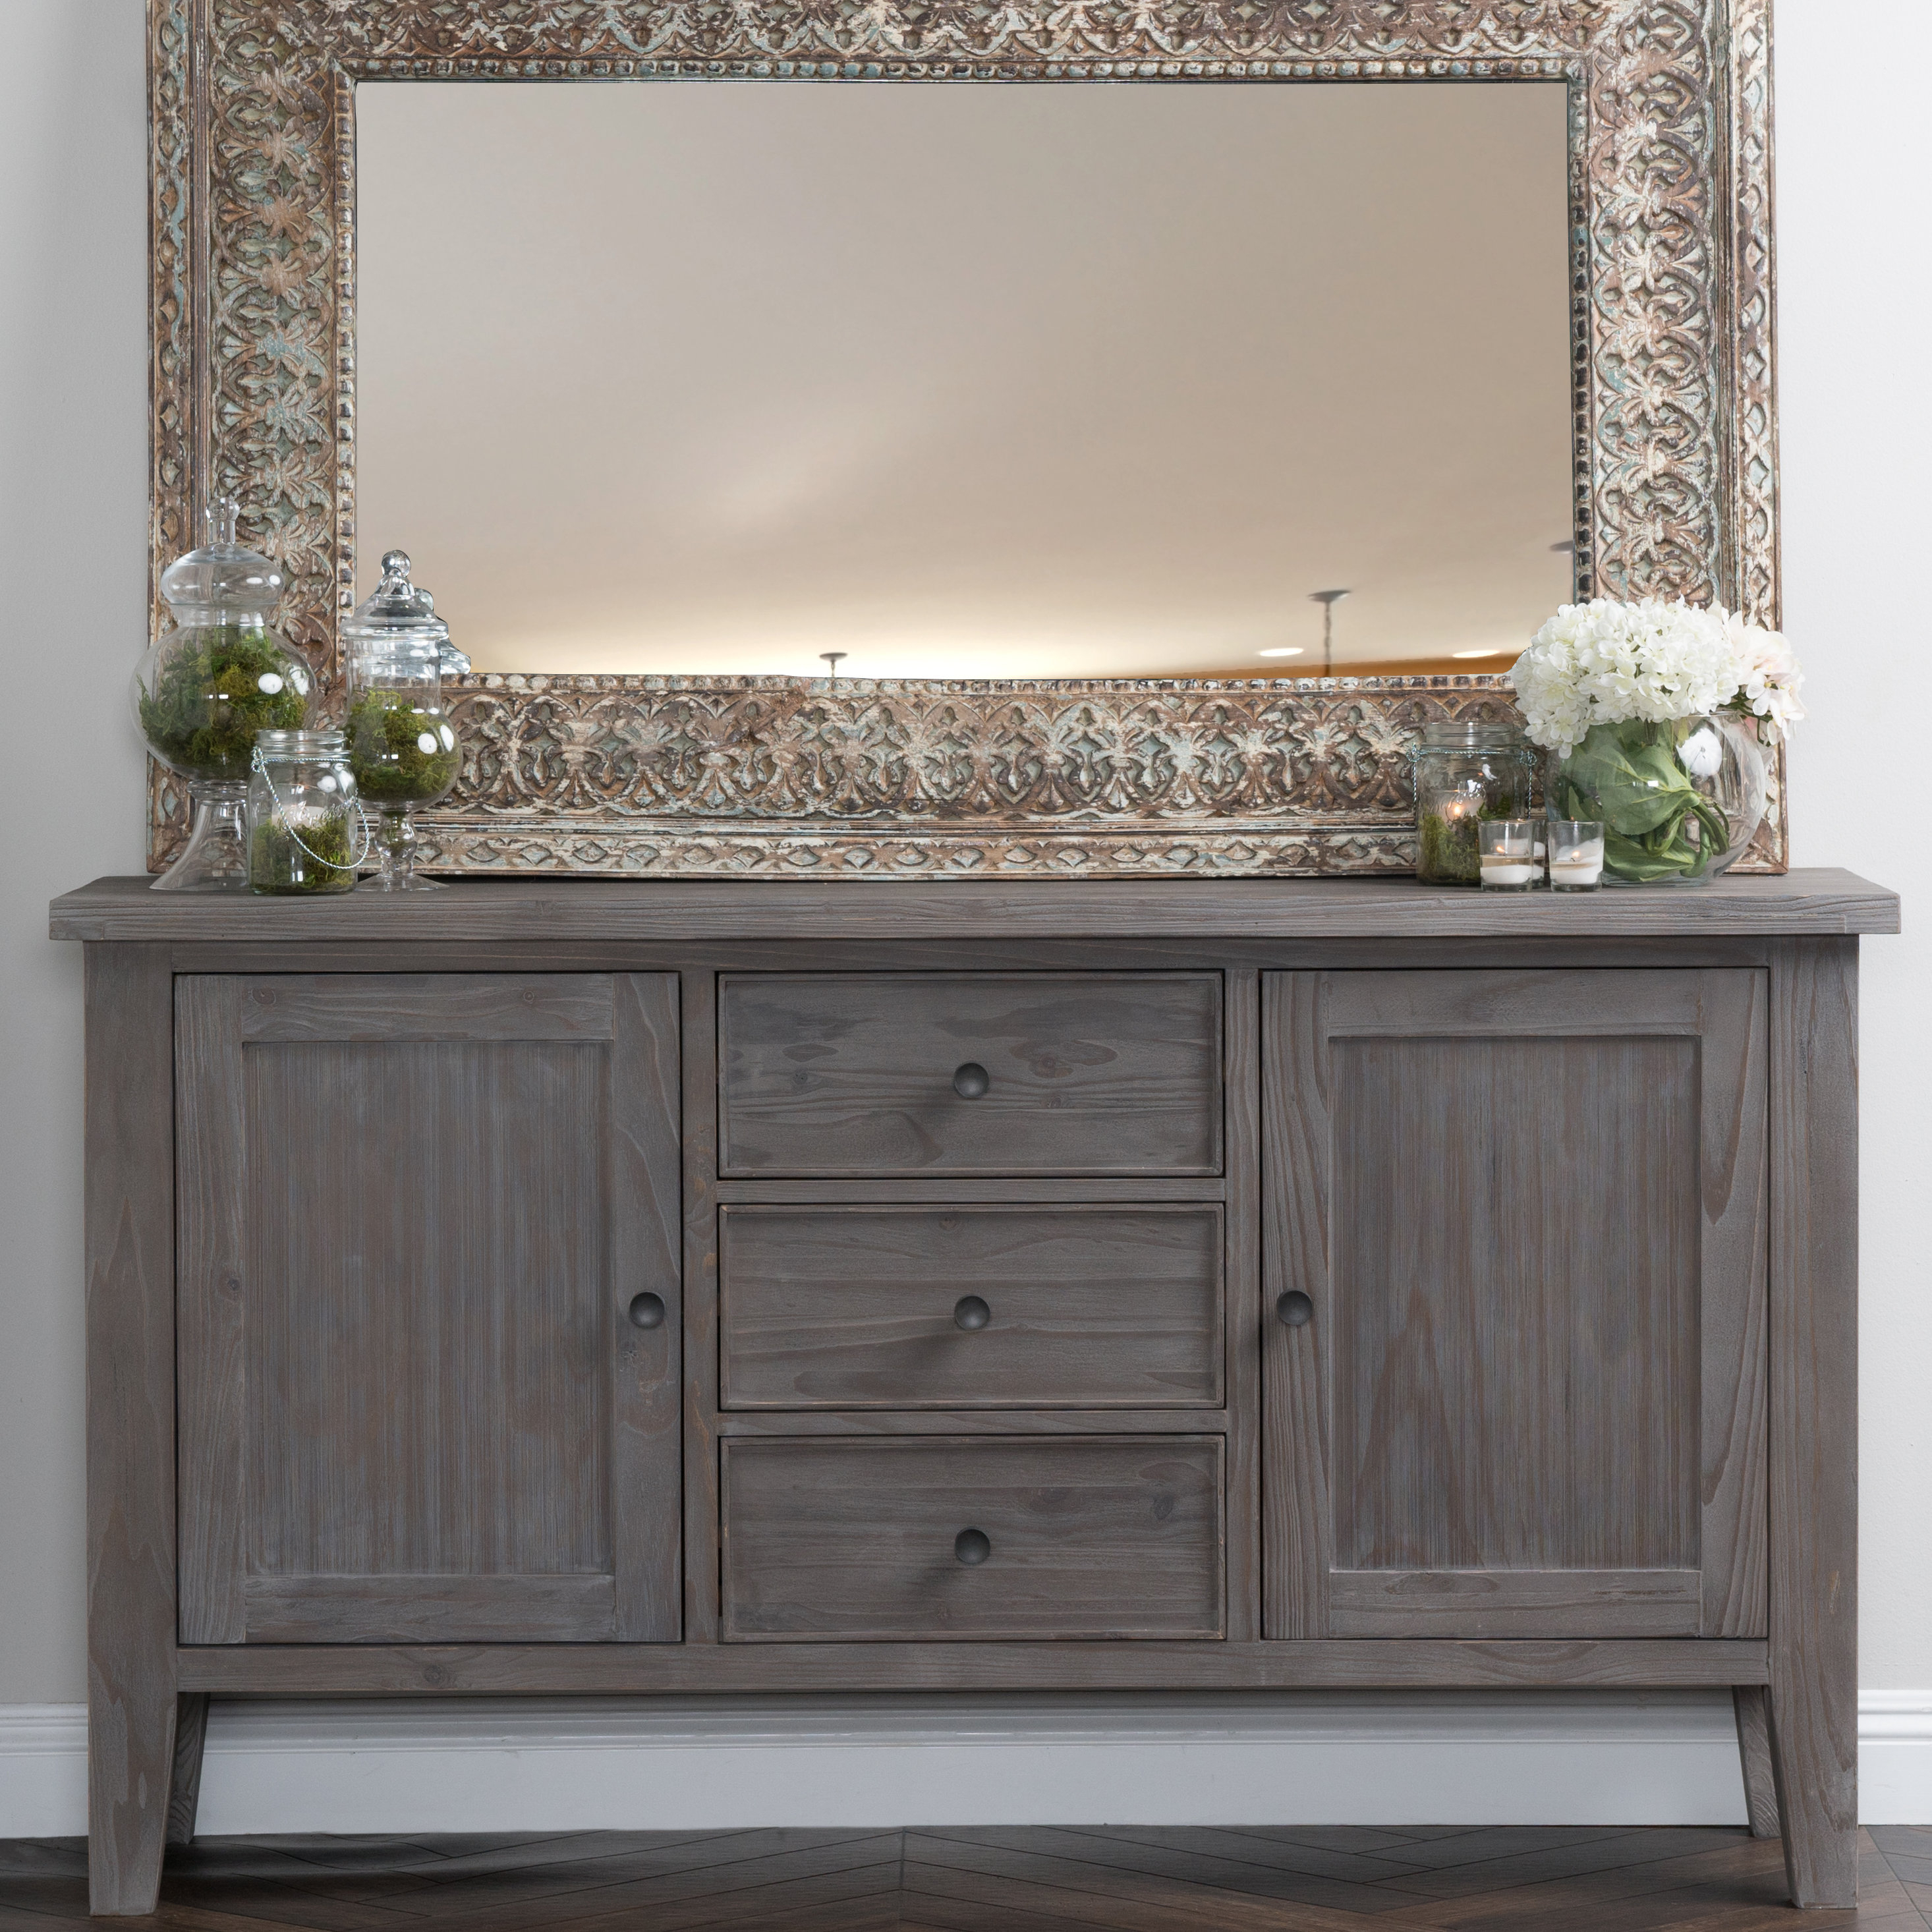 Echo Sideboard & Reviews | Joss & Main for Chicoree Charlena Sideboards (Image 8 of 30)